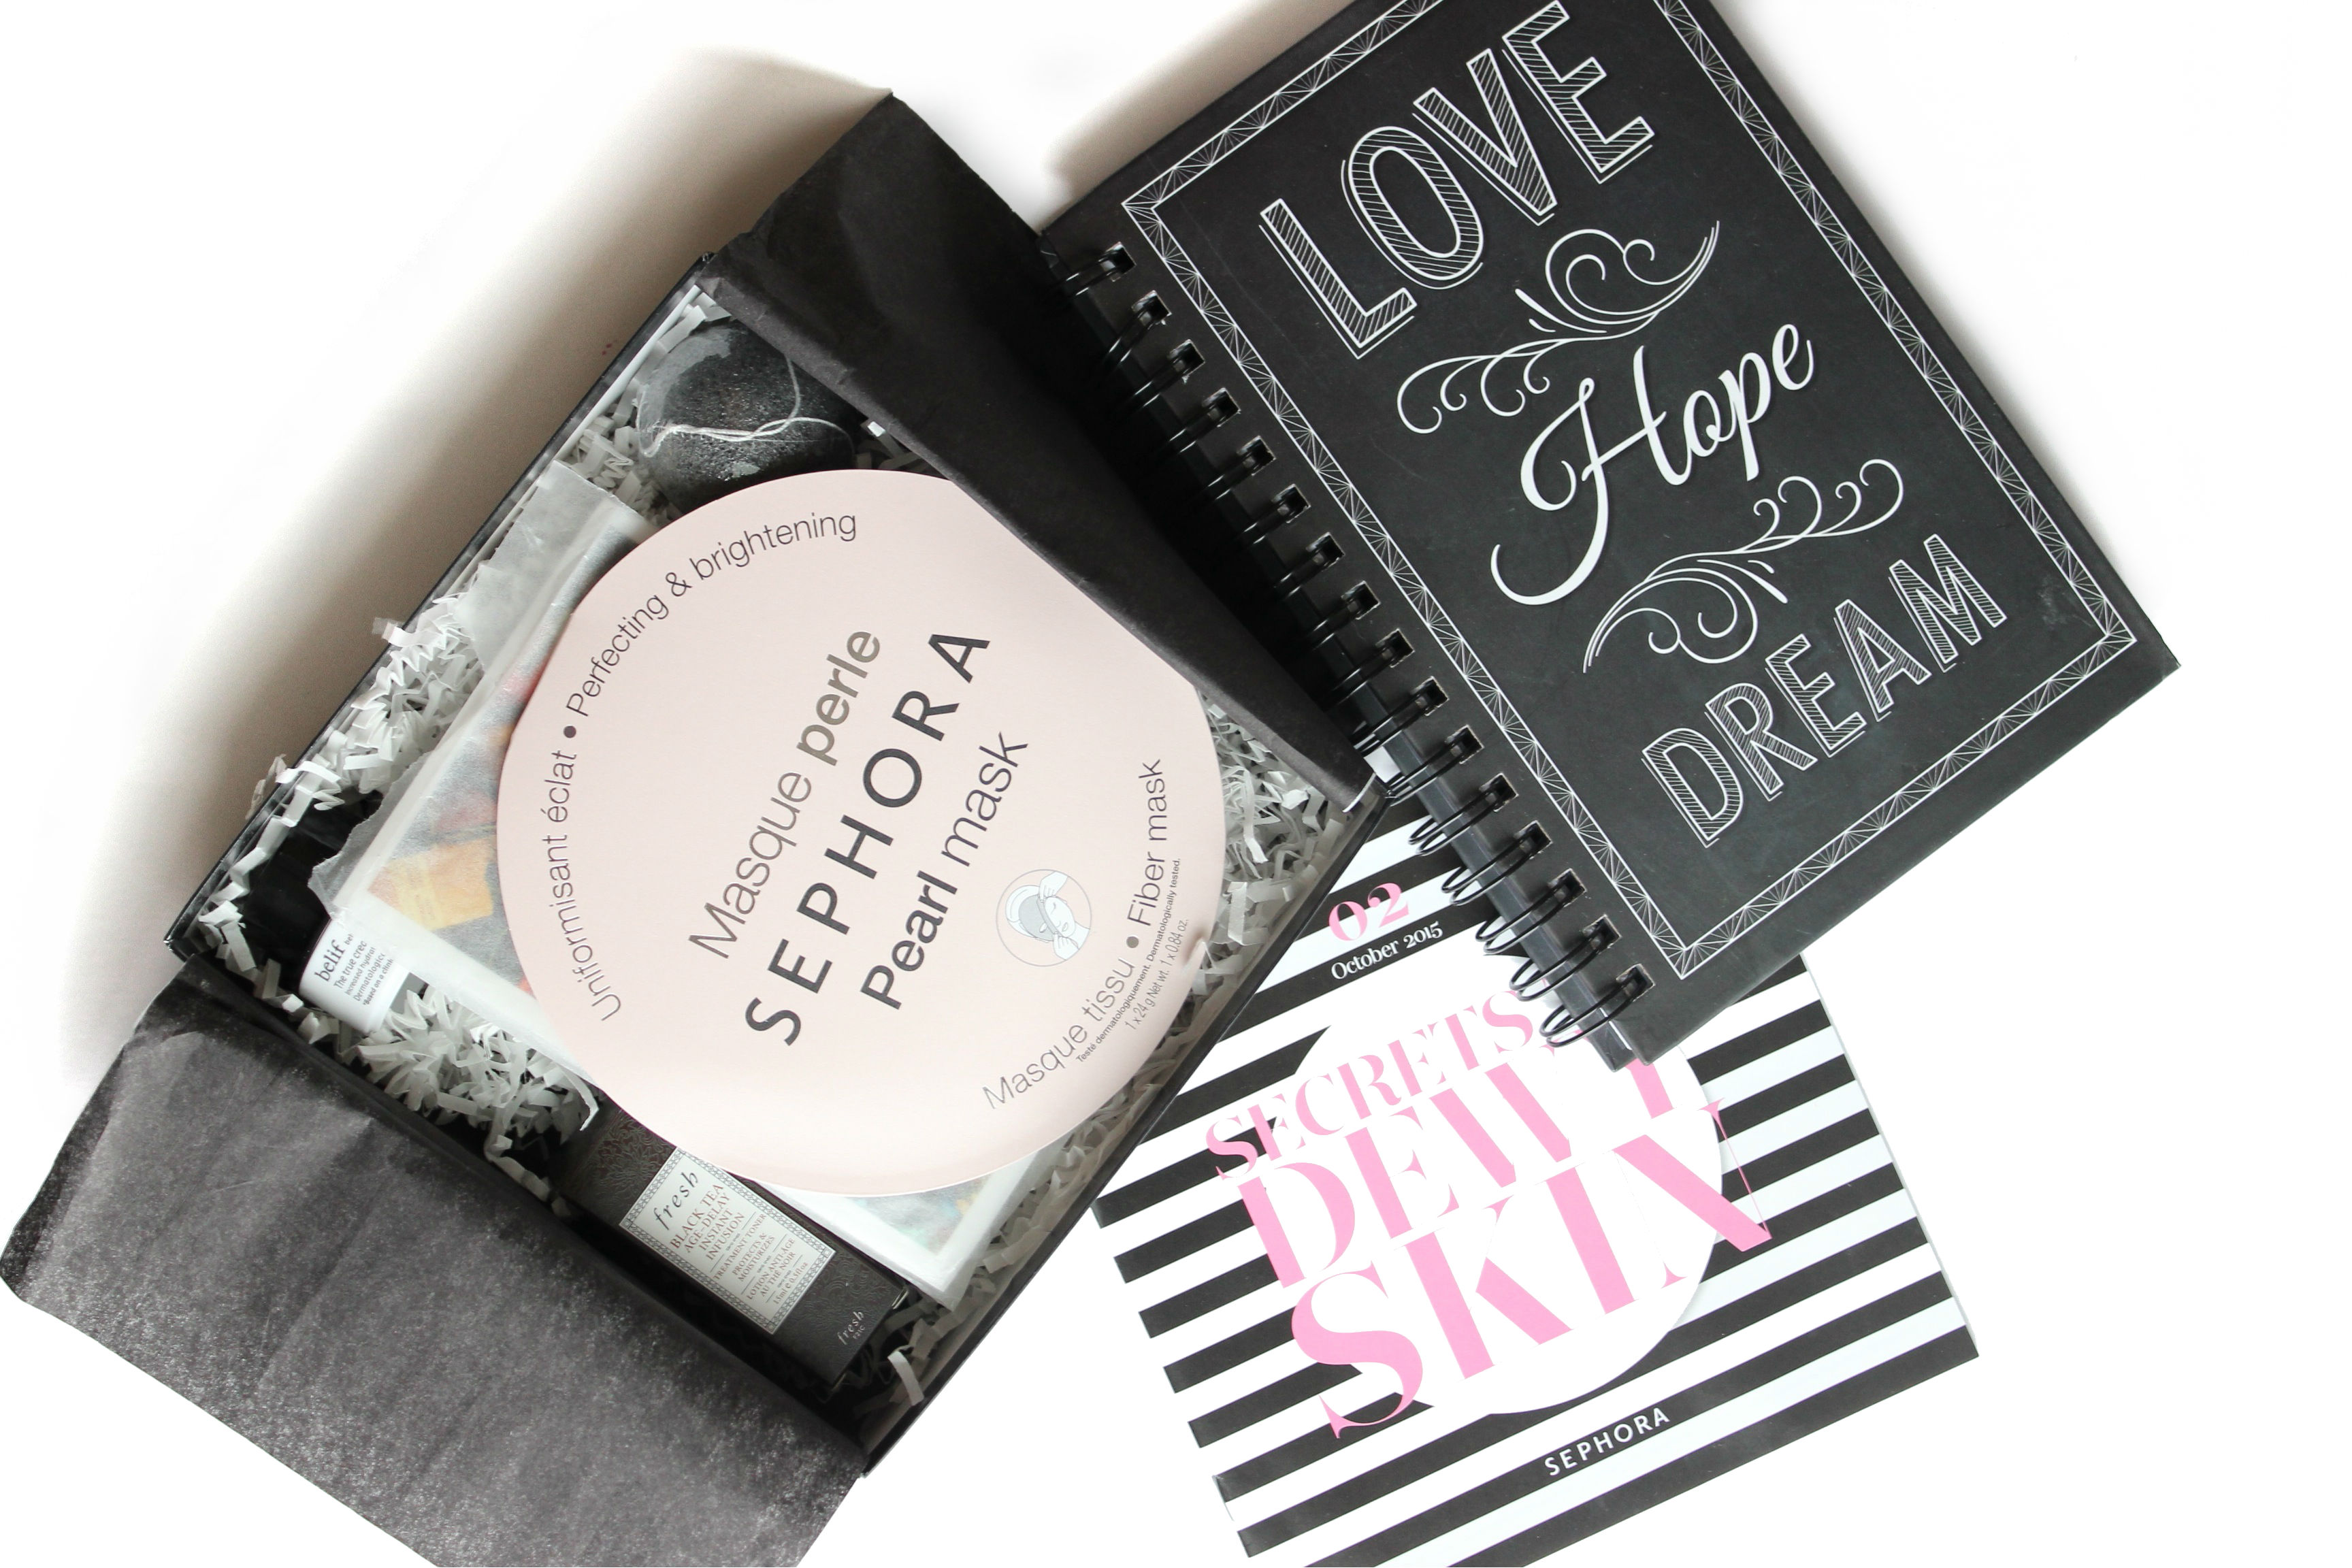 #SephoraPlay Play by Sephora October 2015 Box Review | Brighterdarling.com